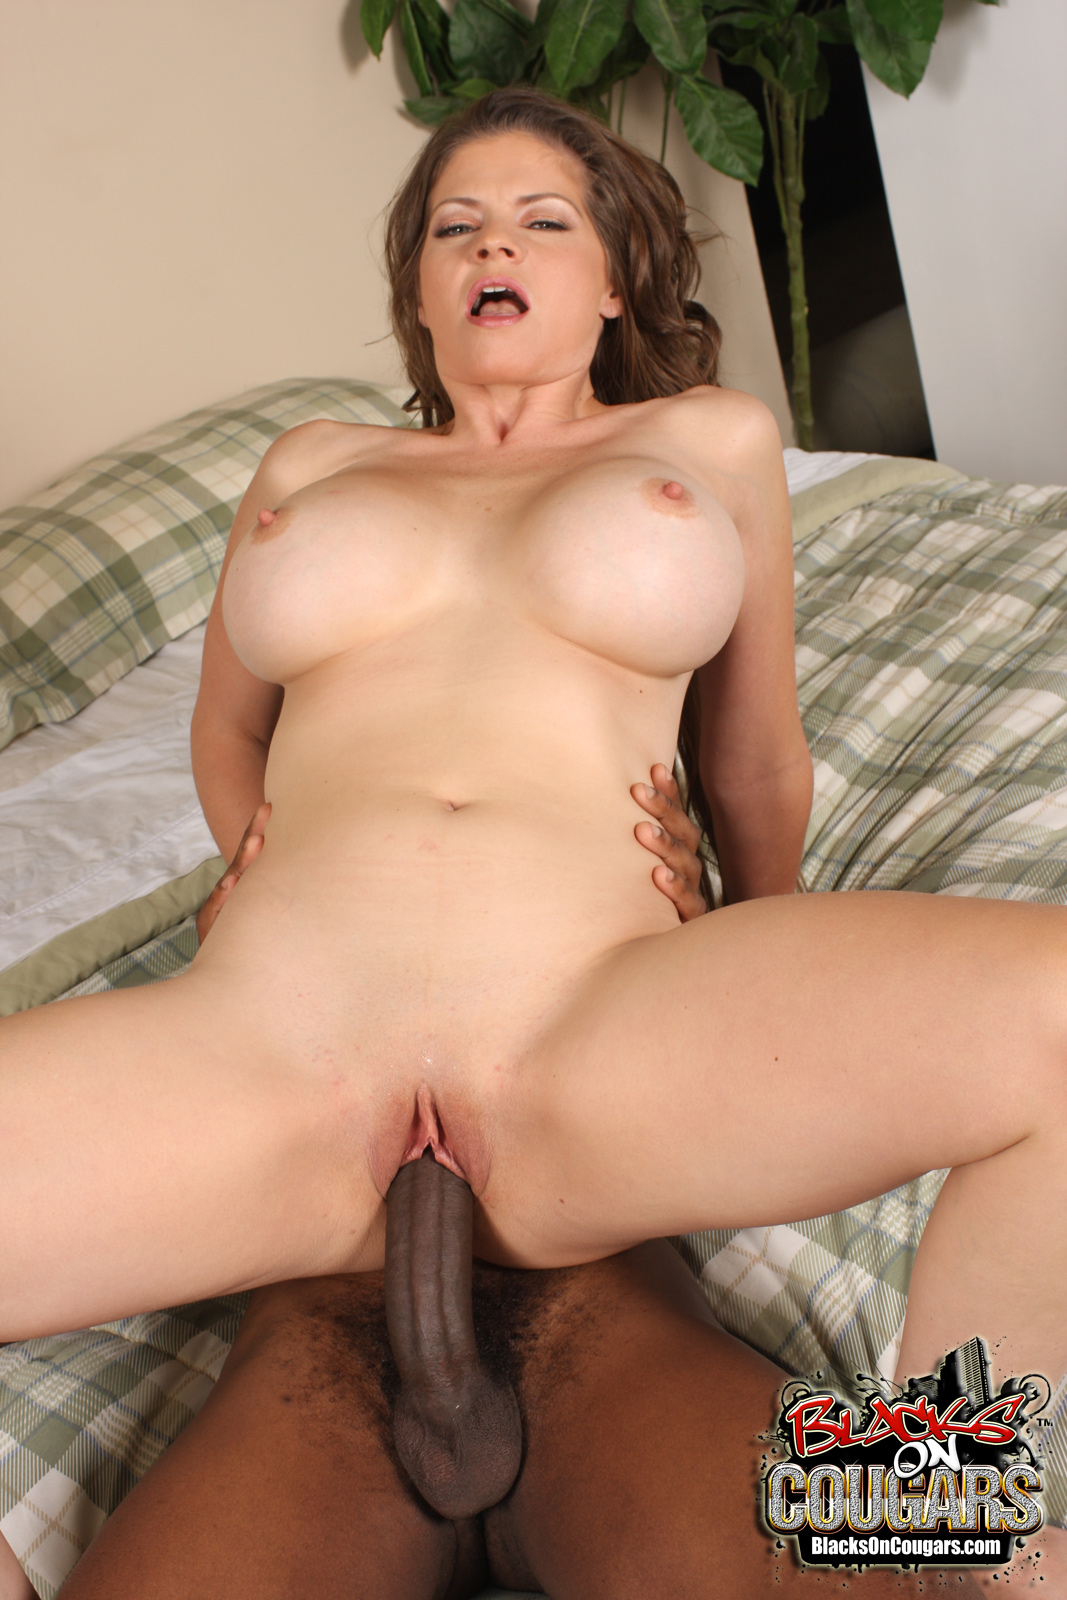 That black cock mature movie woman that